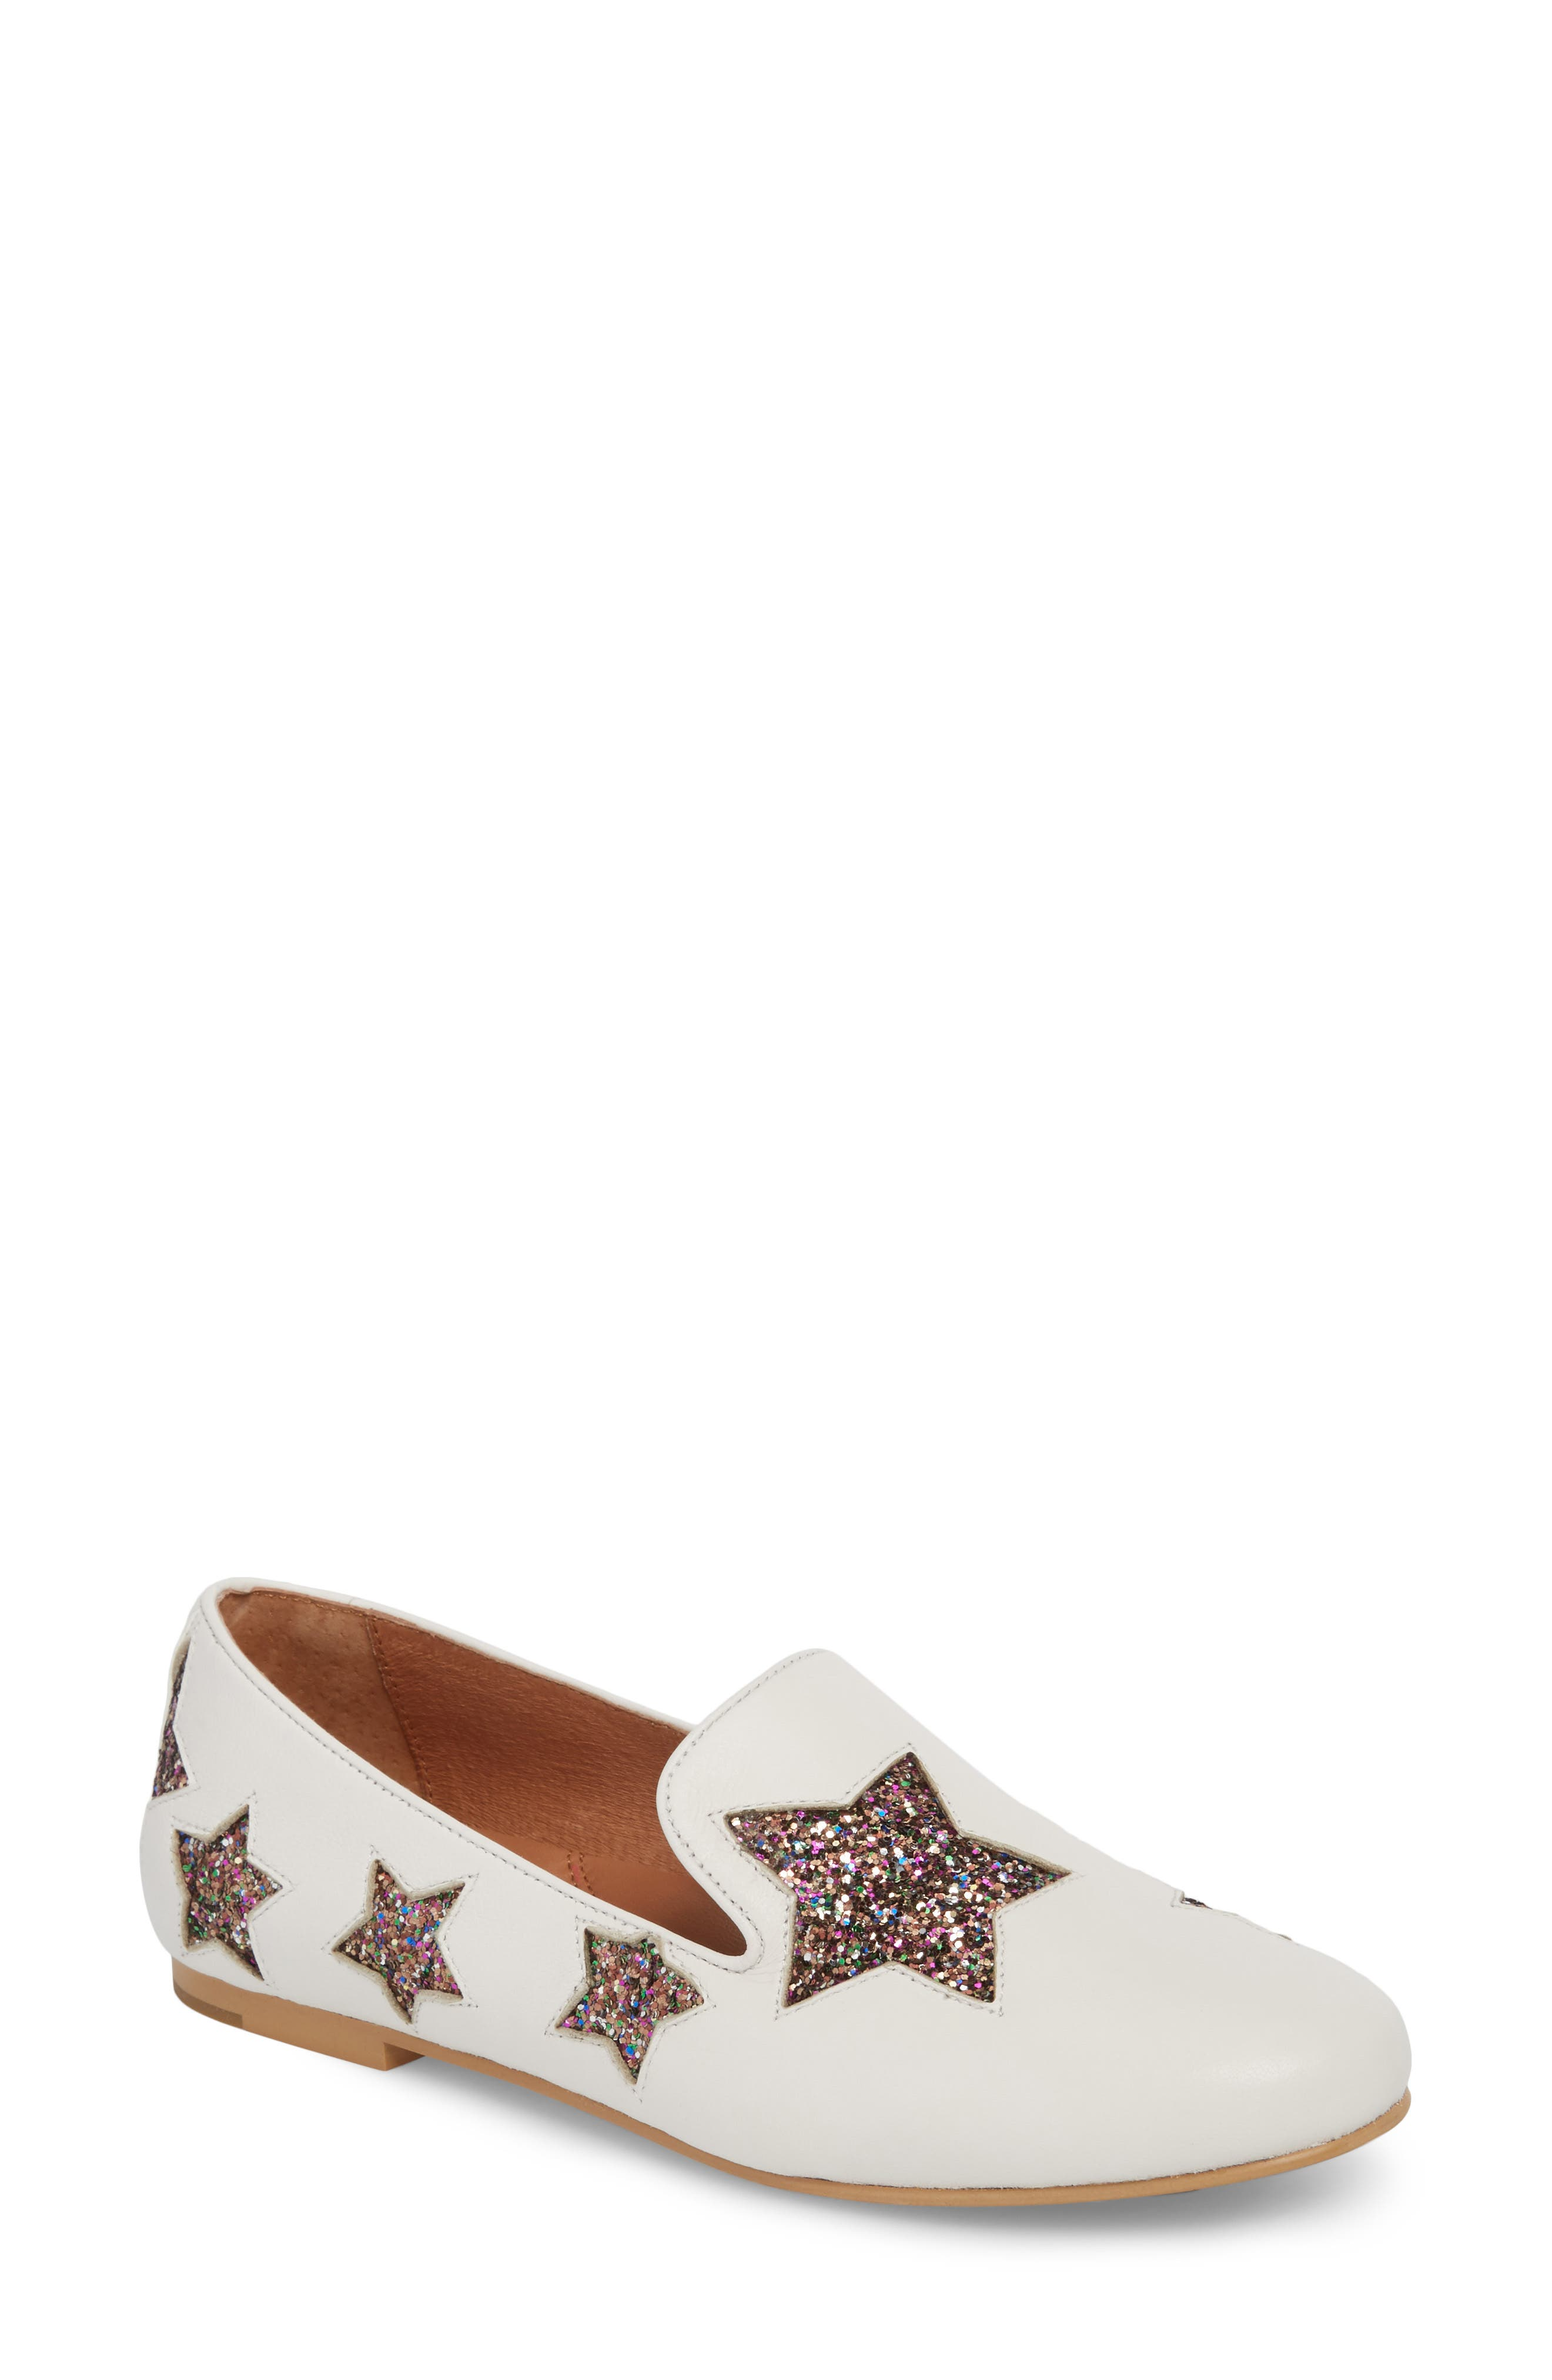 Eugene Stars Flat,                             Main thumbnail 1, color,                             WHITE STARS LEATHER